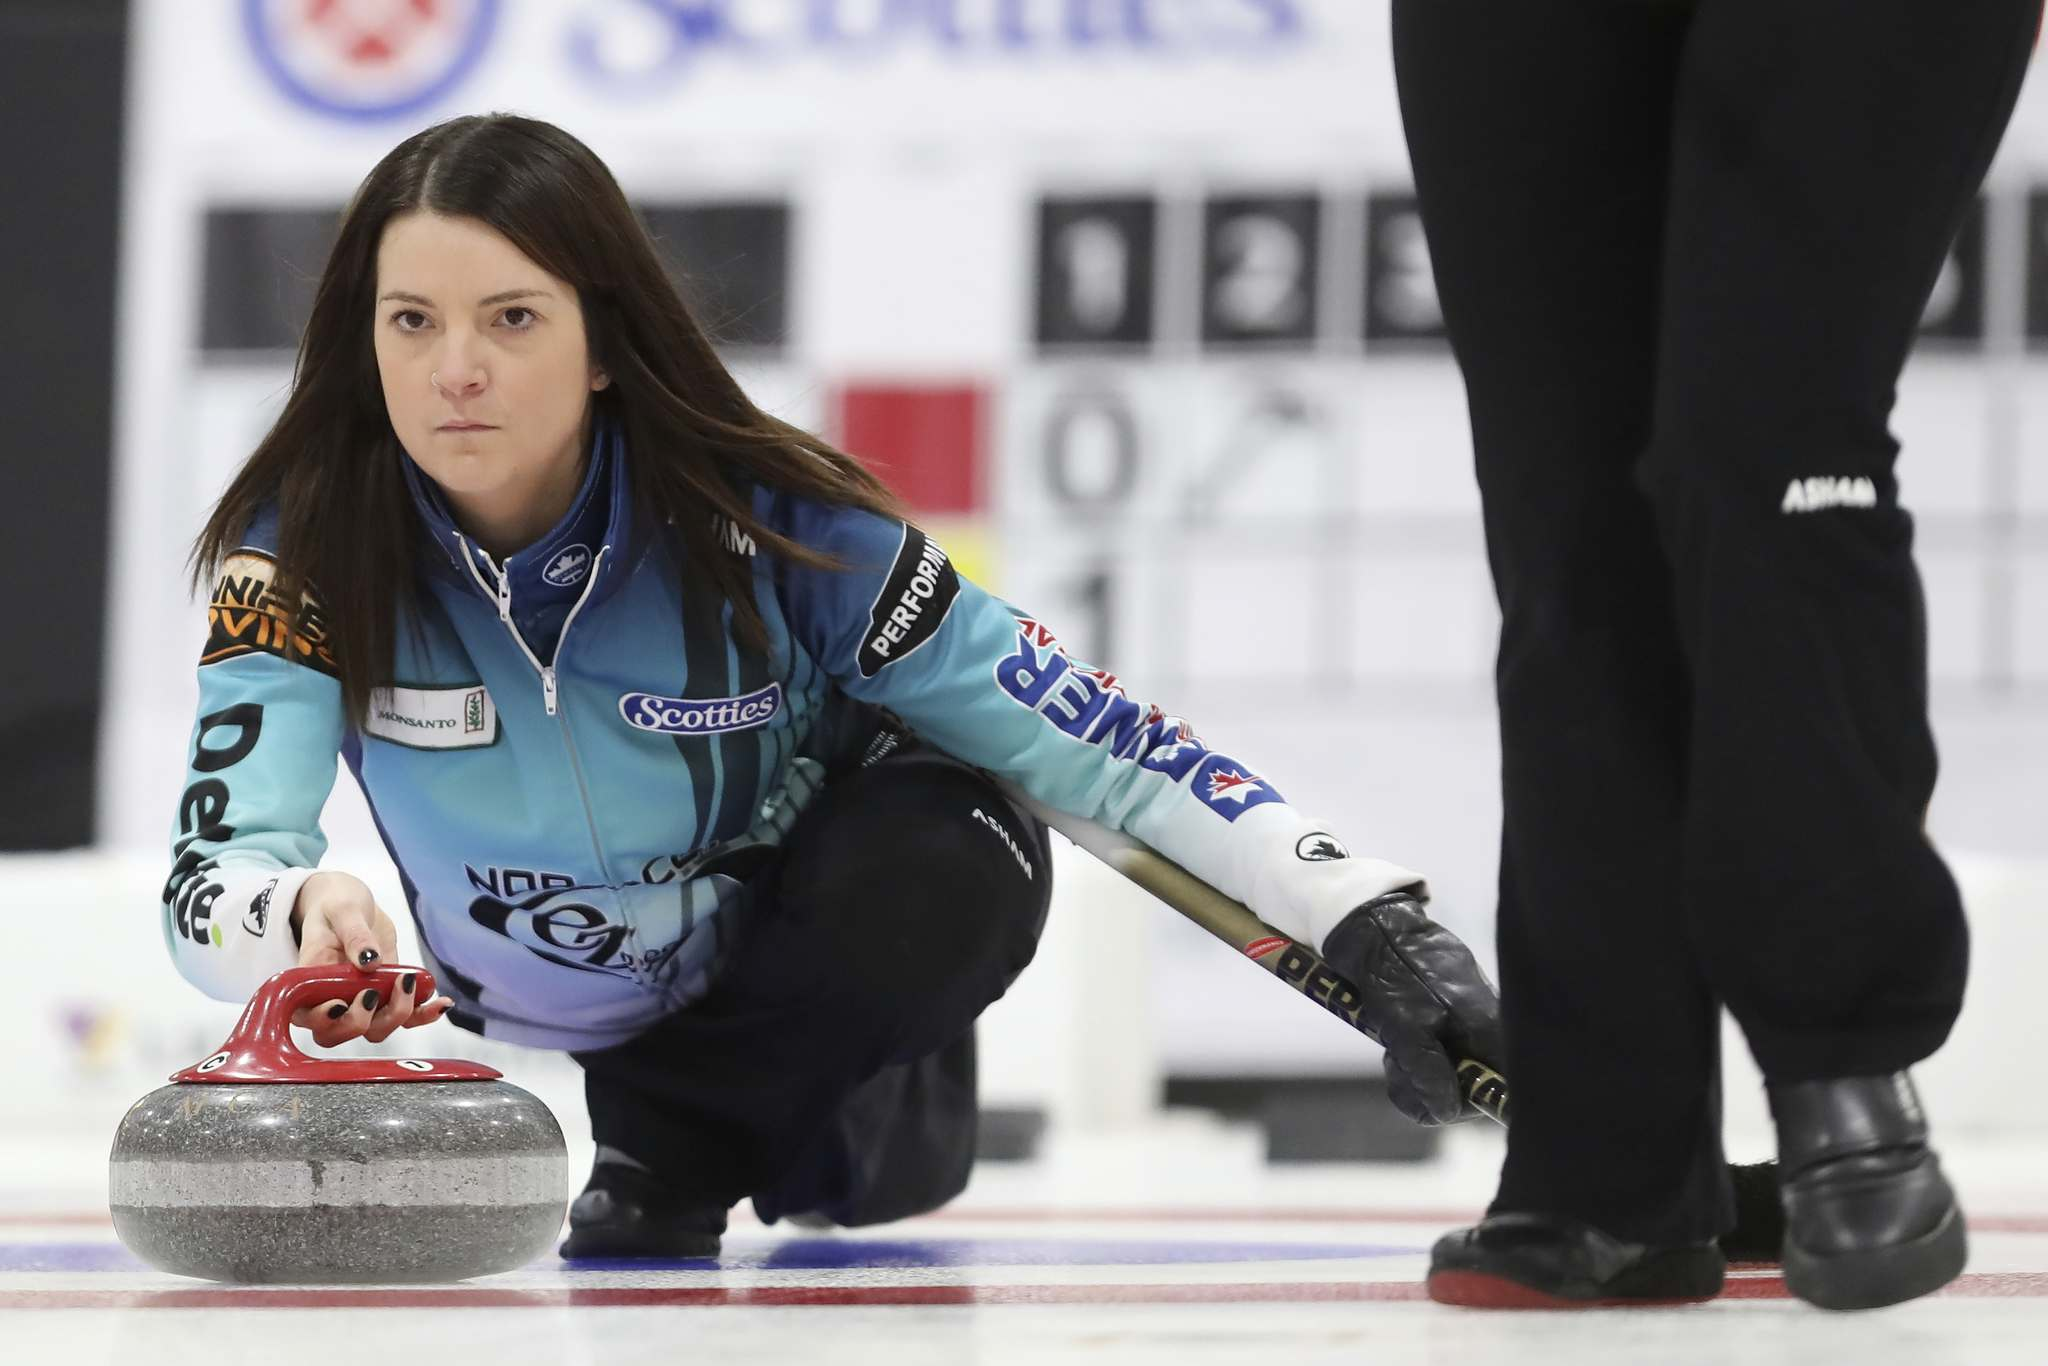 (Tim Smith/The Brandon Sun)</p><p>Skip Kerri Einarson throws a stone during her East St. Paul rink&#39;s match against Mackenzie Zacharias&#39; Altona rink at the 2018 Scotties Tournament of Hearts at the Shamrock Centre in Killarney.</p>